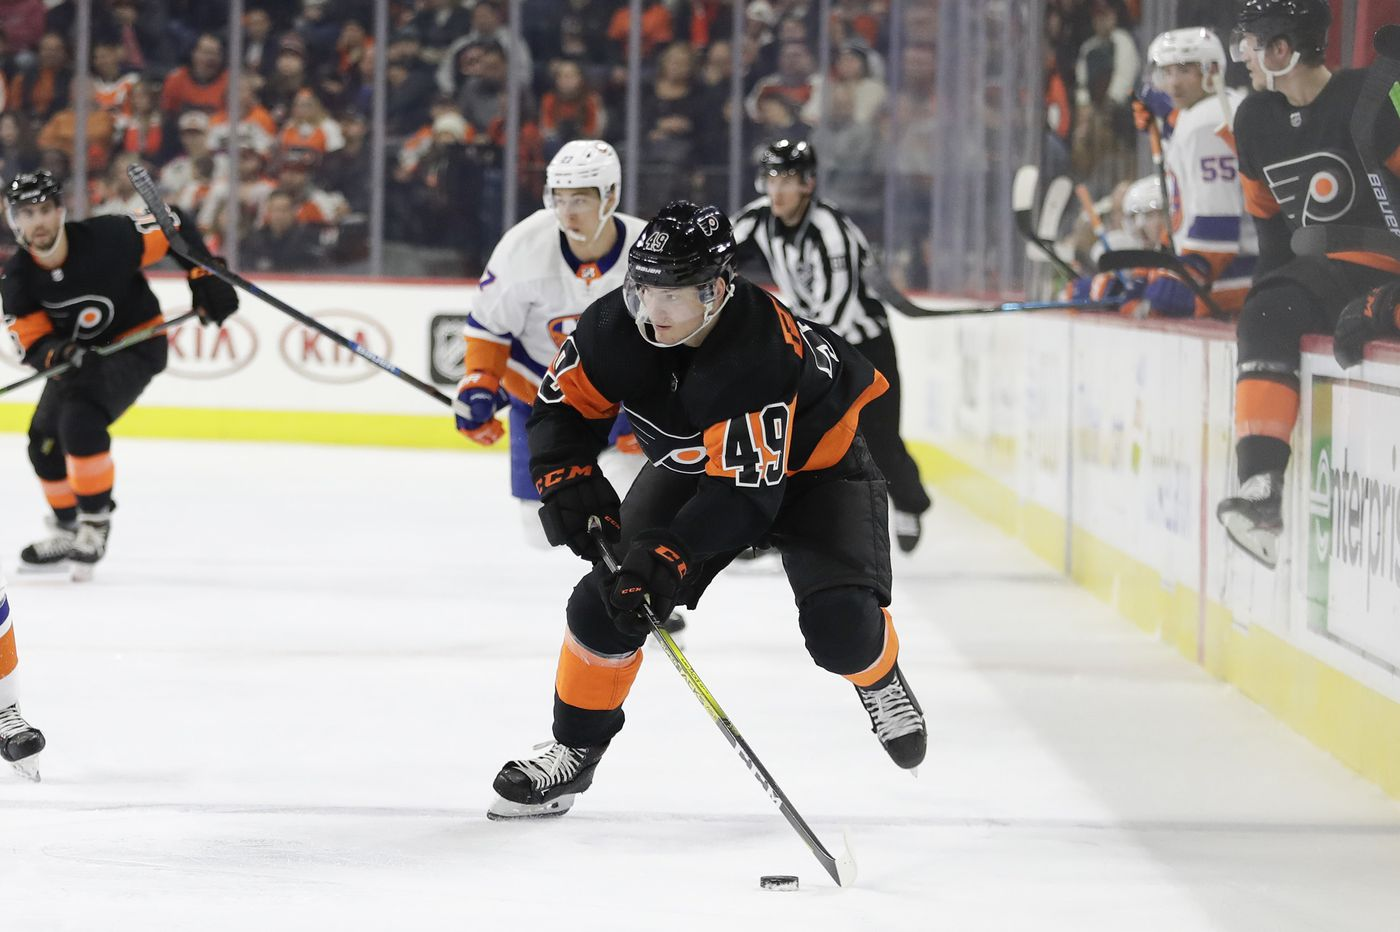 Grueling playoff schedule may cause more lineup changes than usual for Flyers, Isles